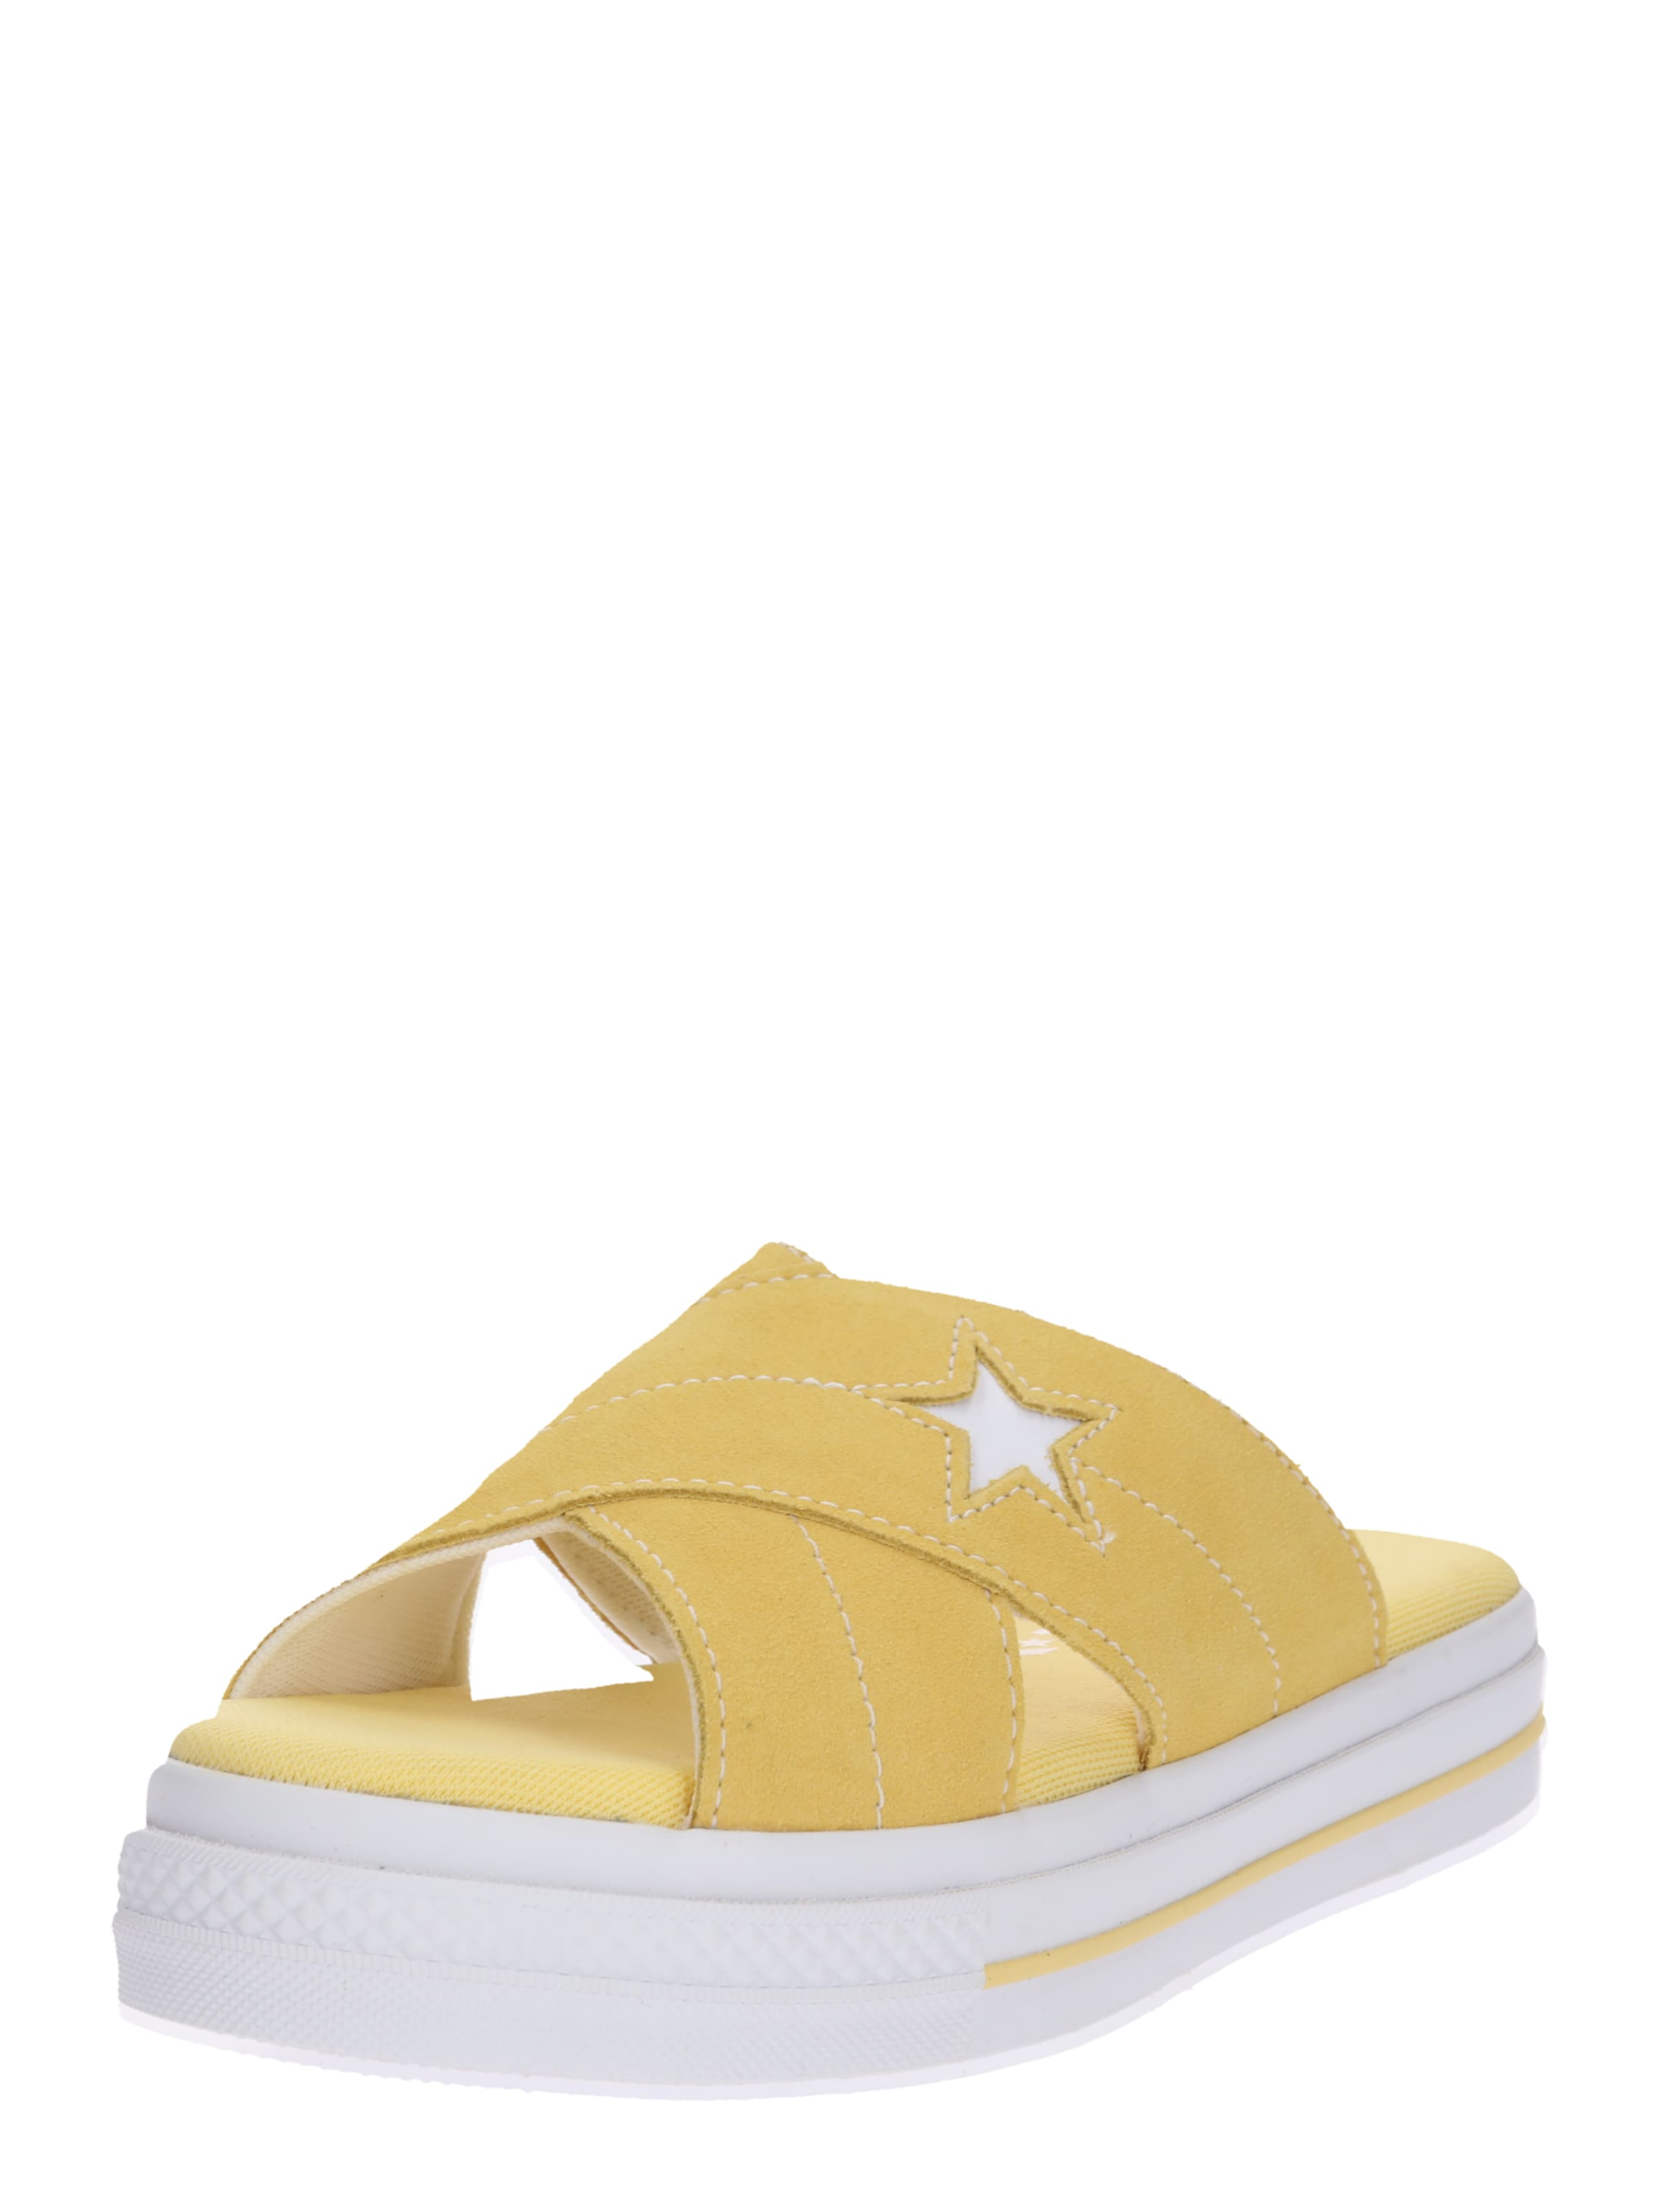 JauneBlanc Star' Converse 'one Mule En knO80wPX